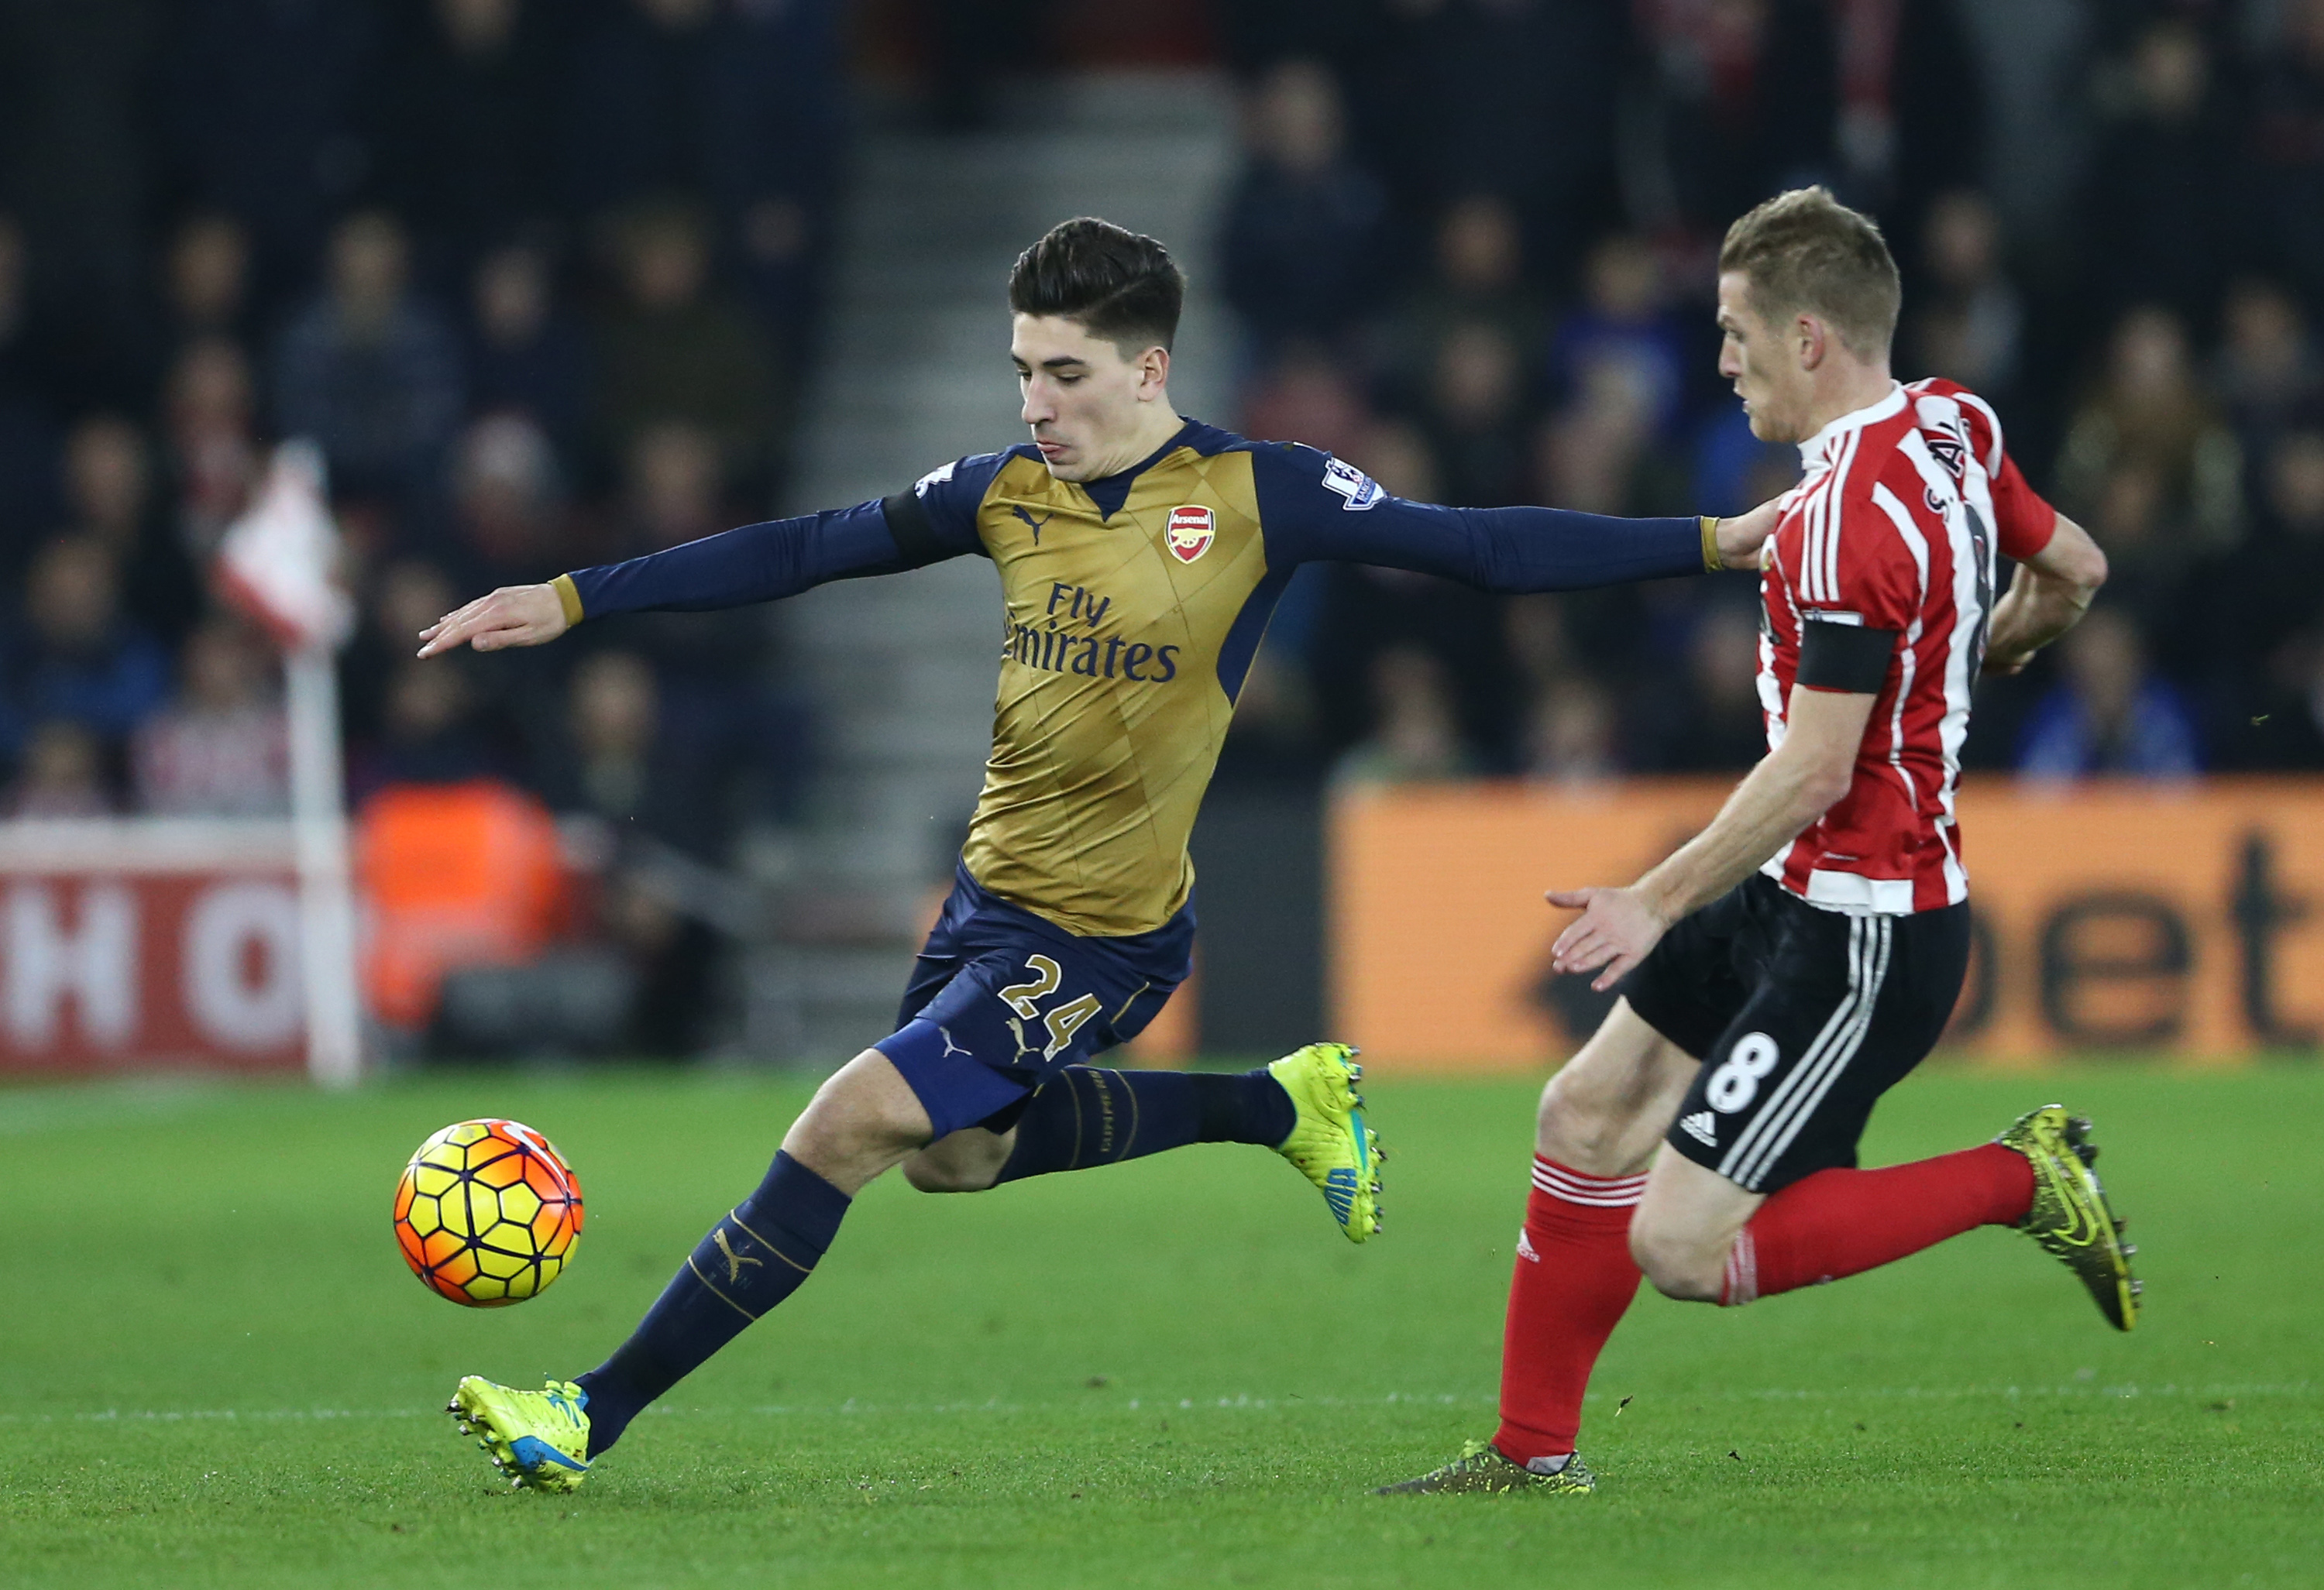 arsenal, bournemouth, stream, watch, odds, lineup, start time, channel, kickoff